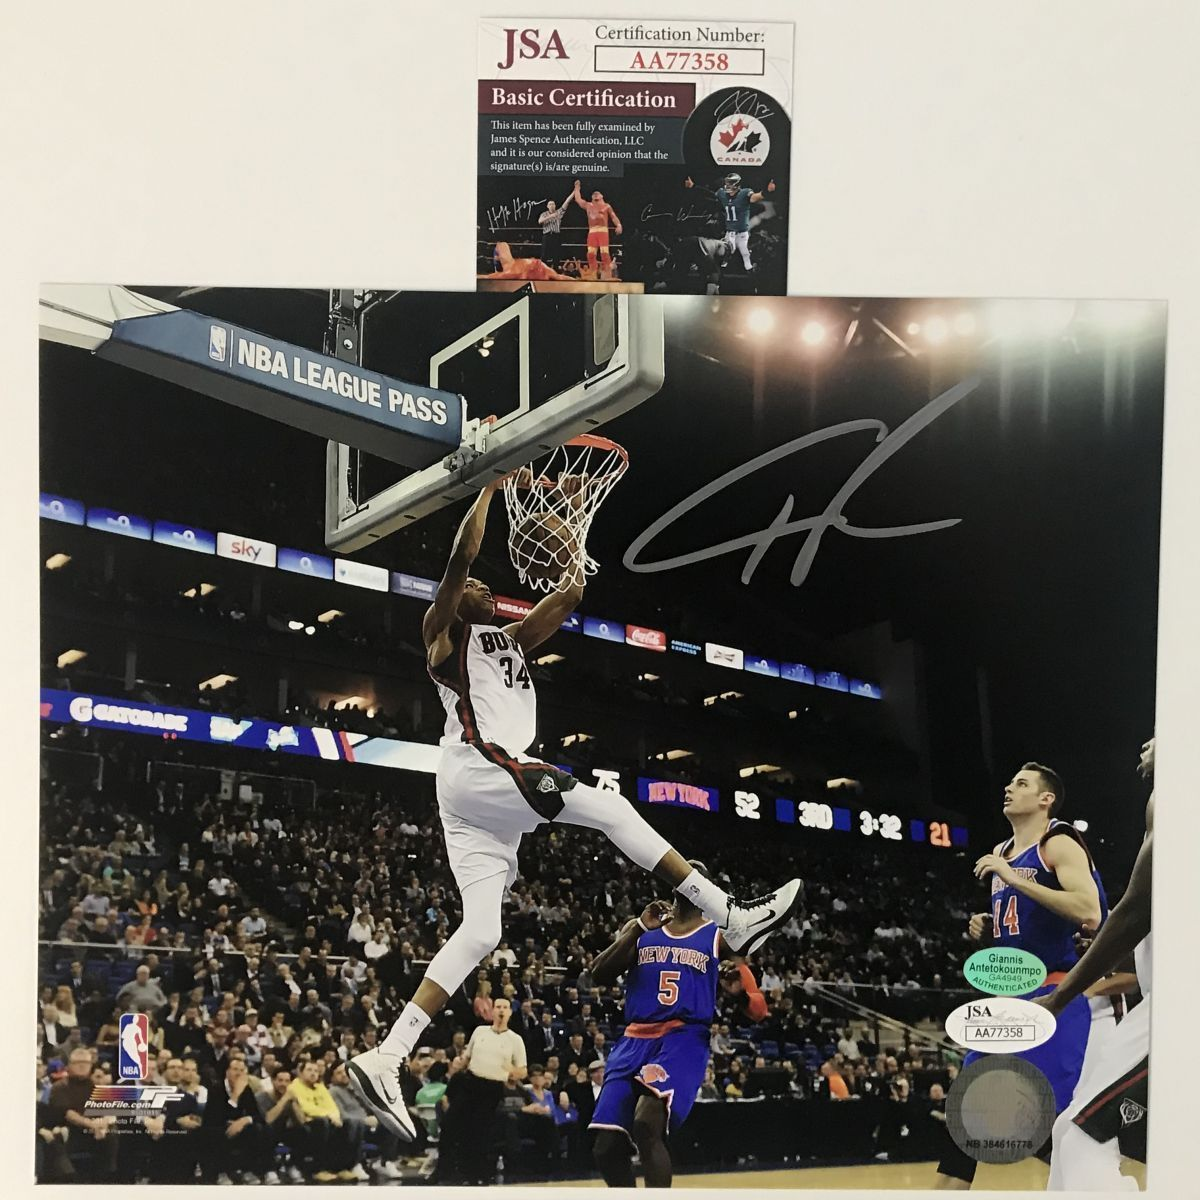 Autographed Signed Giannis Antetokounmpo and similar items. S l1600 d79532c69